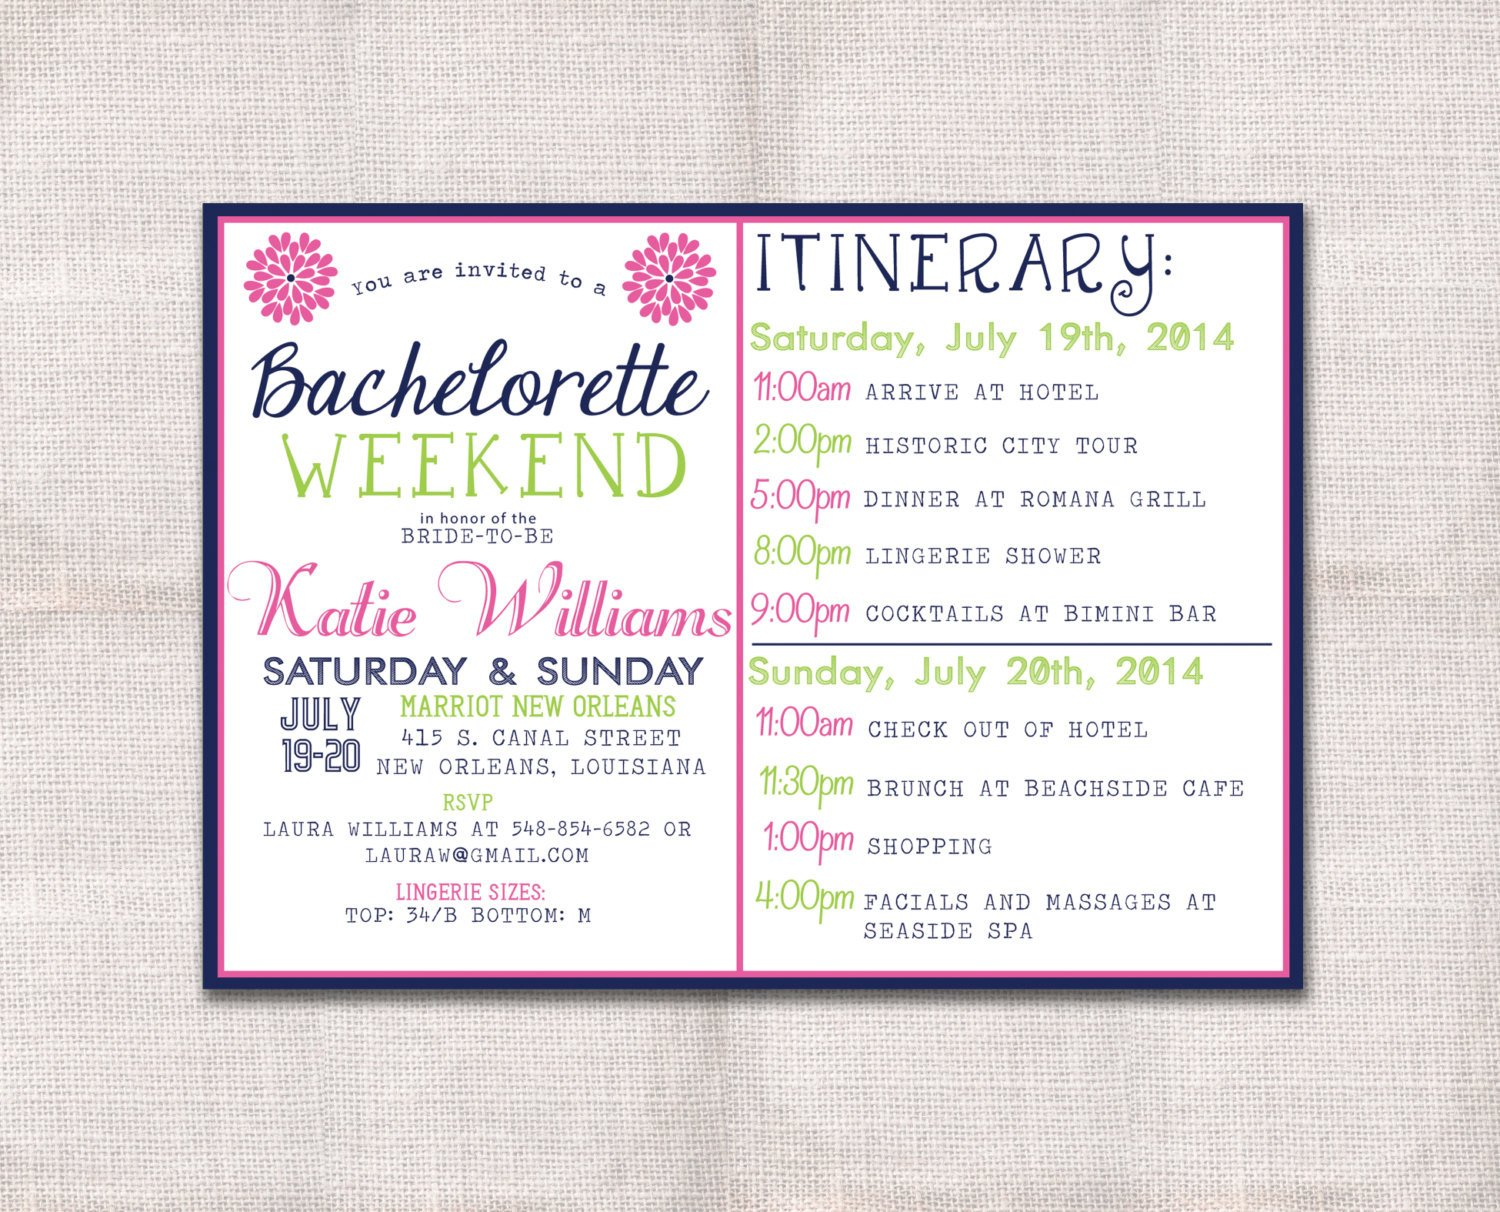 Bachelorette Party Itinerary Template Bachelorette Party Weekend Invitation and by Darlinbrandopress